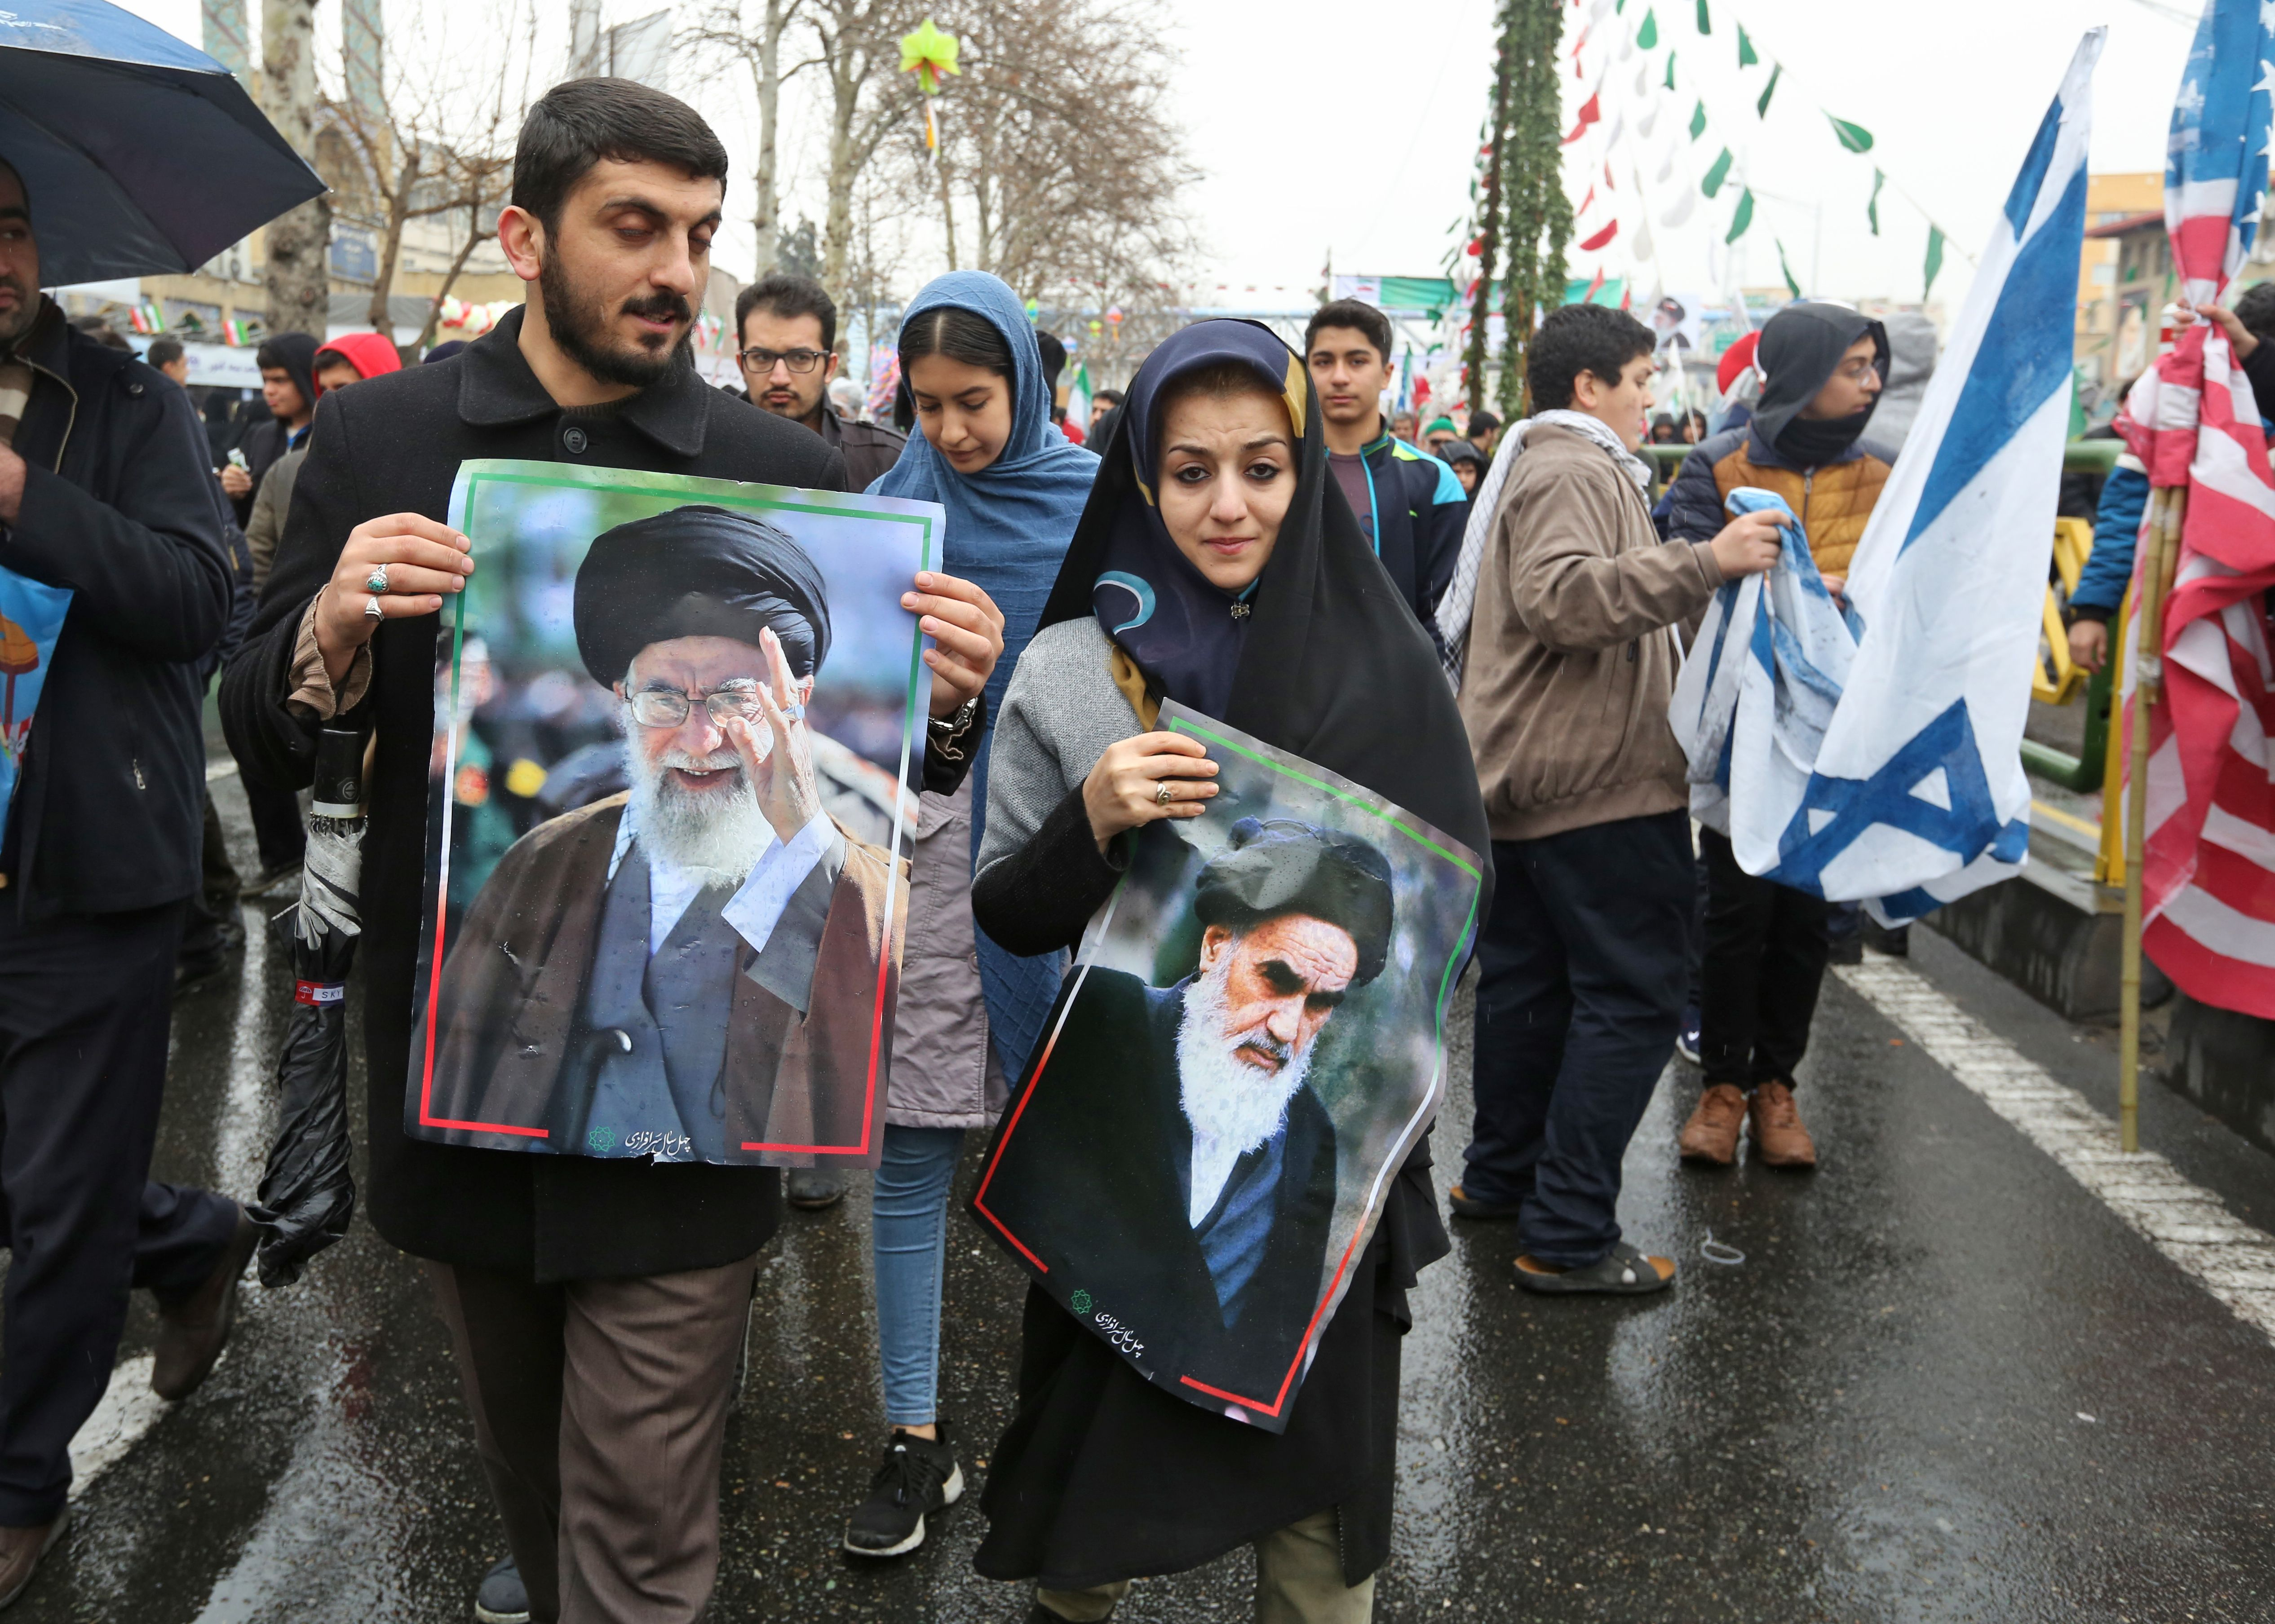 An Iranian man marches with a portrait of the country's Supreme Leader Ali Khamenei (L) alongside a woman holding up another of Islamic Revolution founder Ayatollah Ruhollah Khomeini (R) during a ceremony celebrating the 40th anniversary of Islamic Revolution in the capital Tehran on February 11, 2019. (ATTA KENARE/AFP/Getty Images)